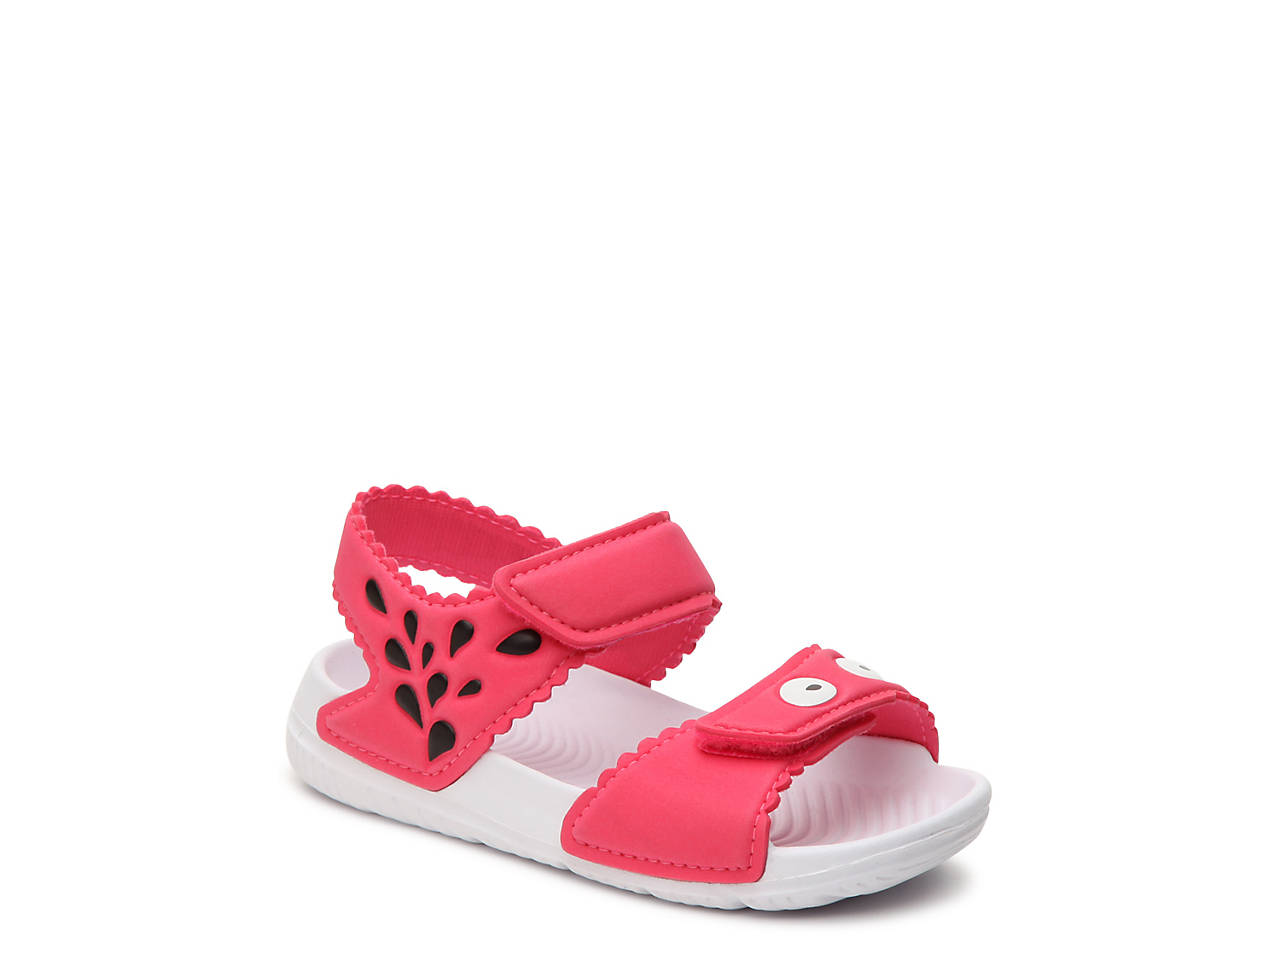 adidas Alta Swim Sandal - Kids' Kids Shoes | DSW